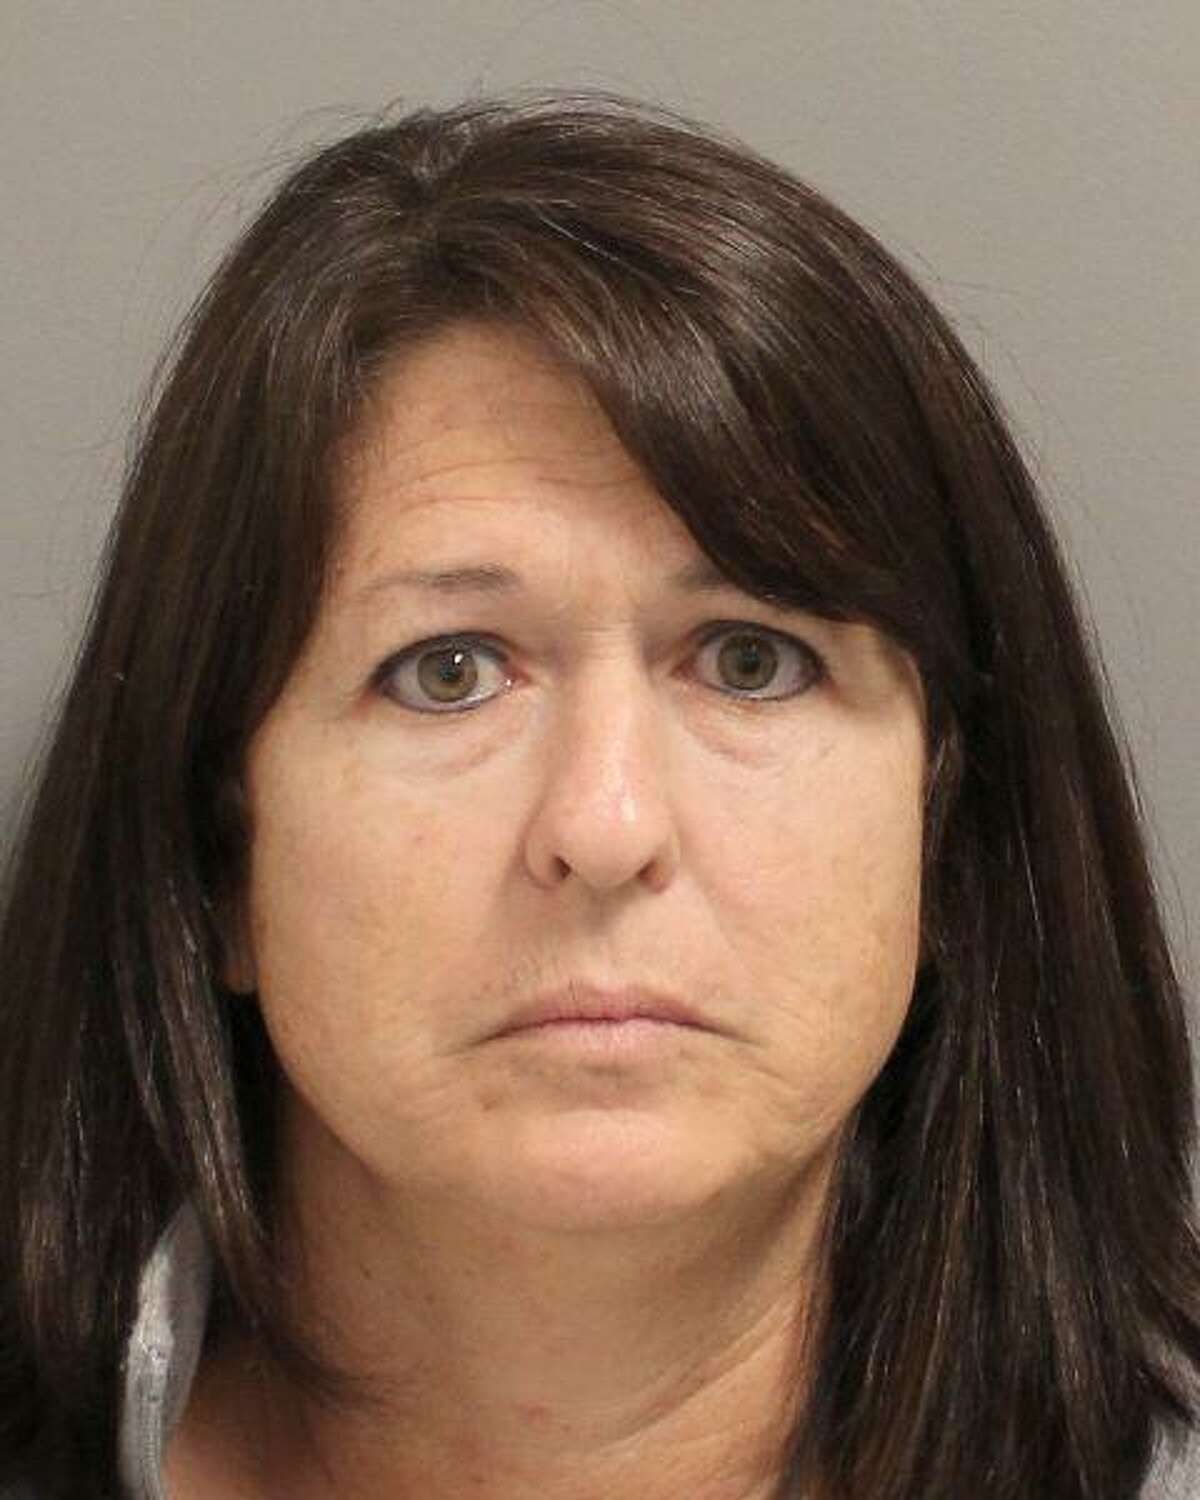 Crystal Sedlar, a former Katy ISD paraprofessional, was arrested for allegedly striking a student with autism.